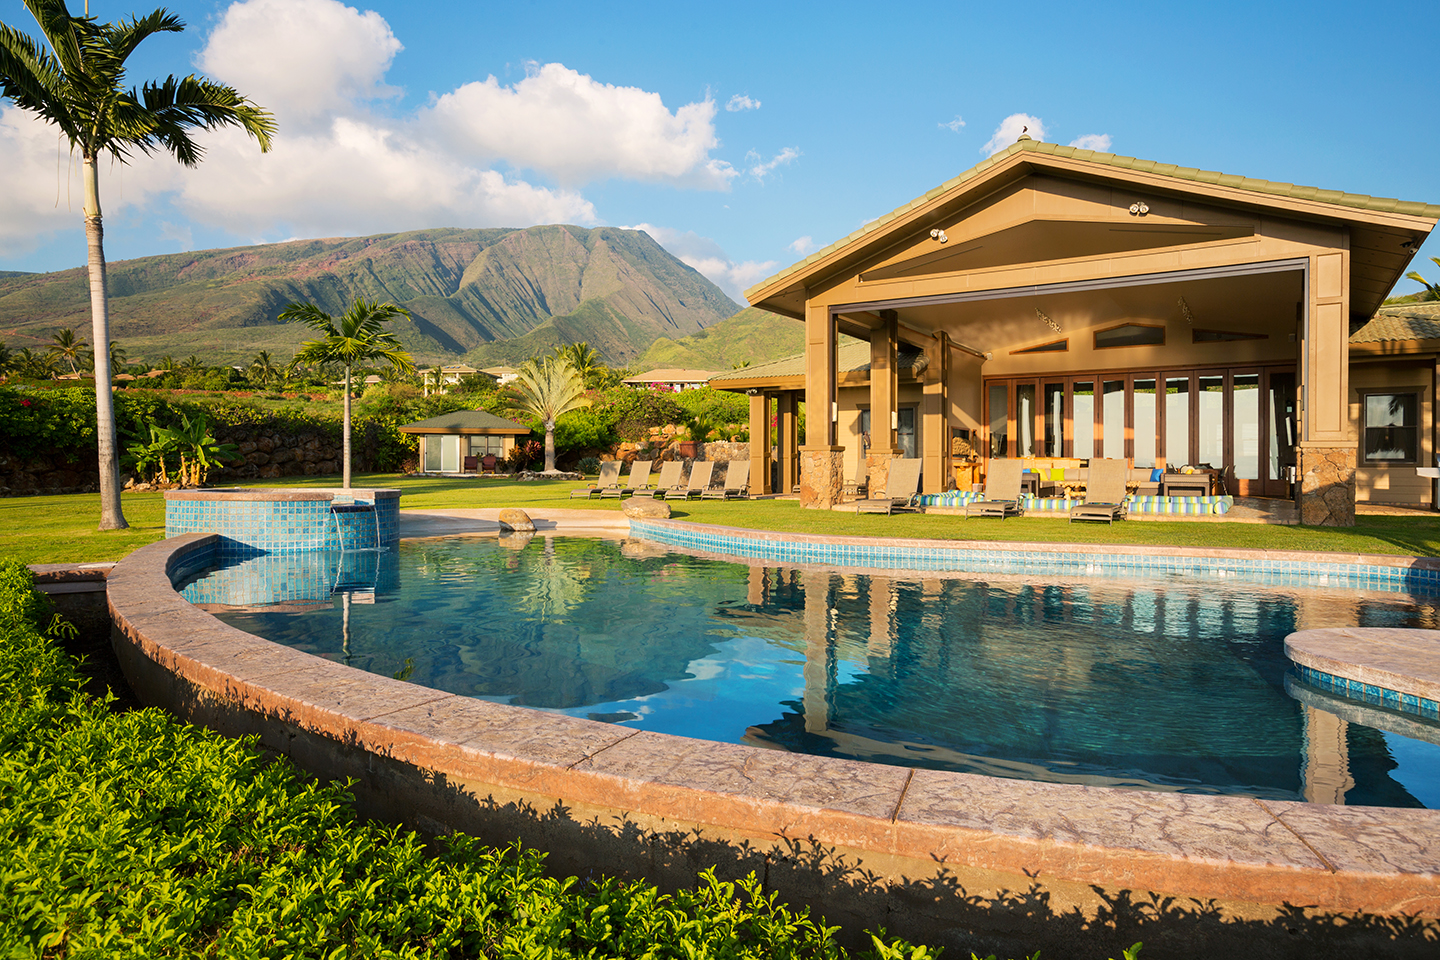 A luxurious tropical resort with a swimming pool, lawn, palm trees, and a mountain in the distance.